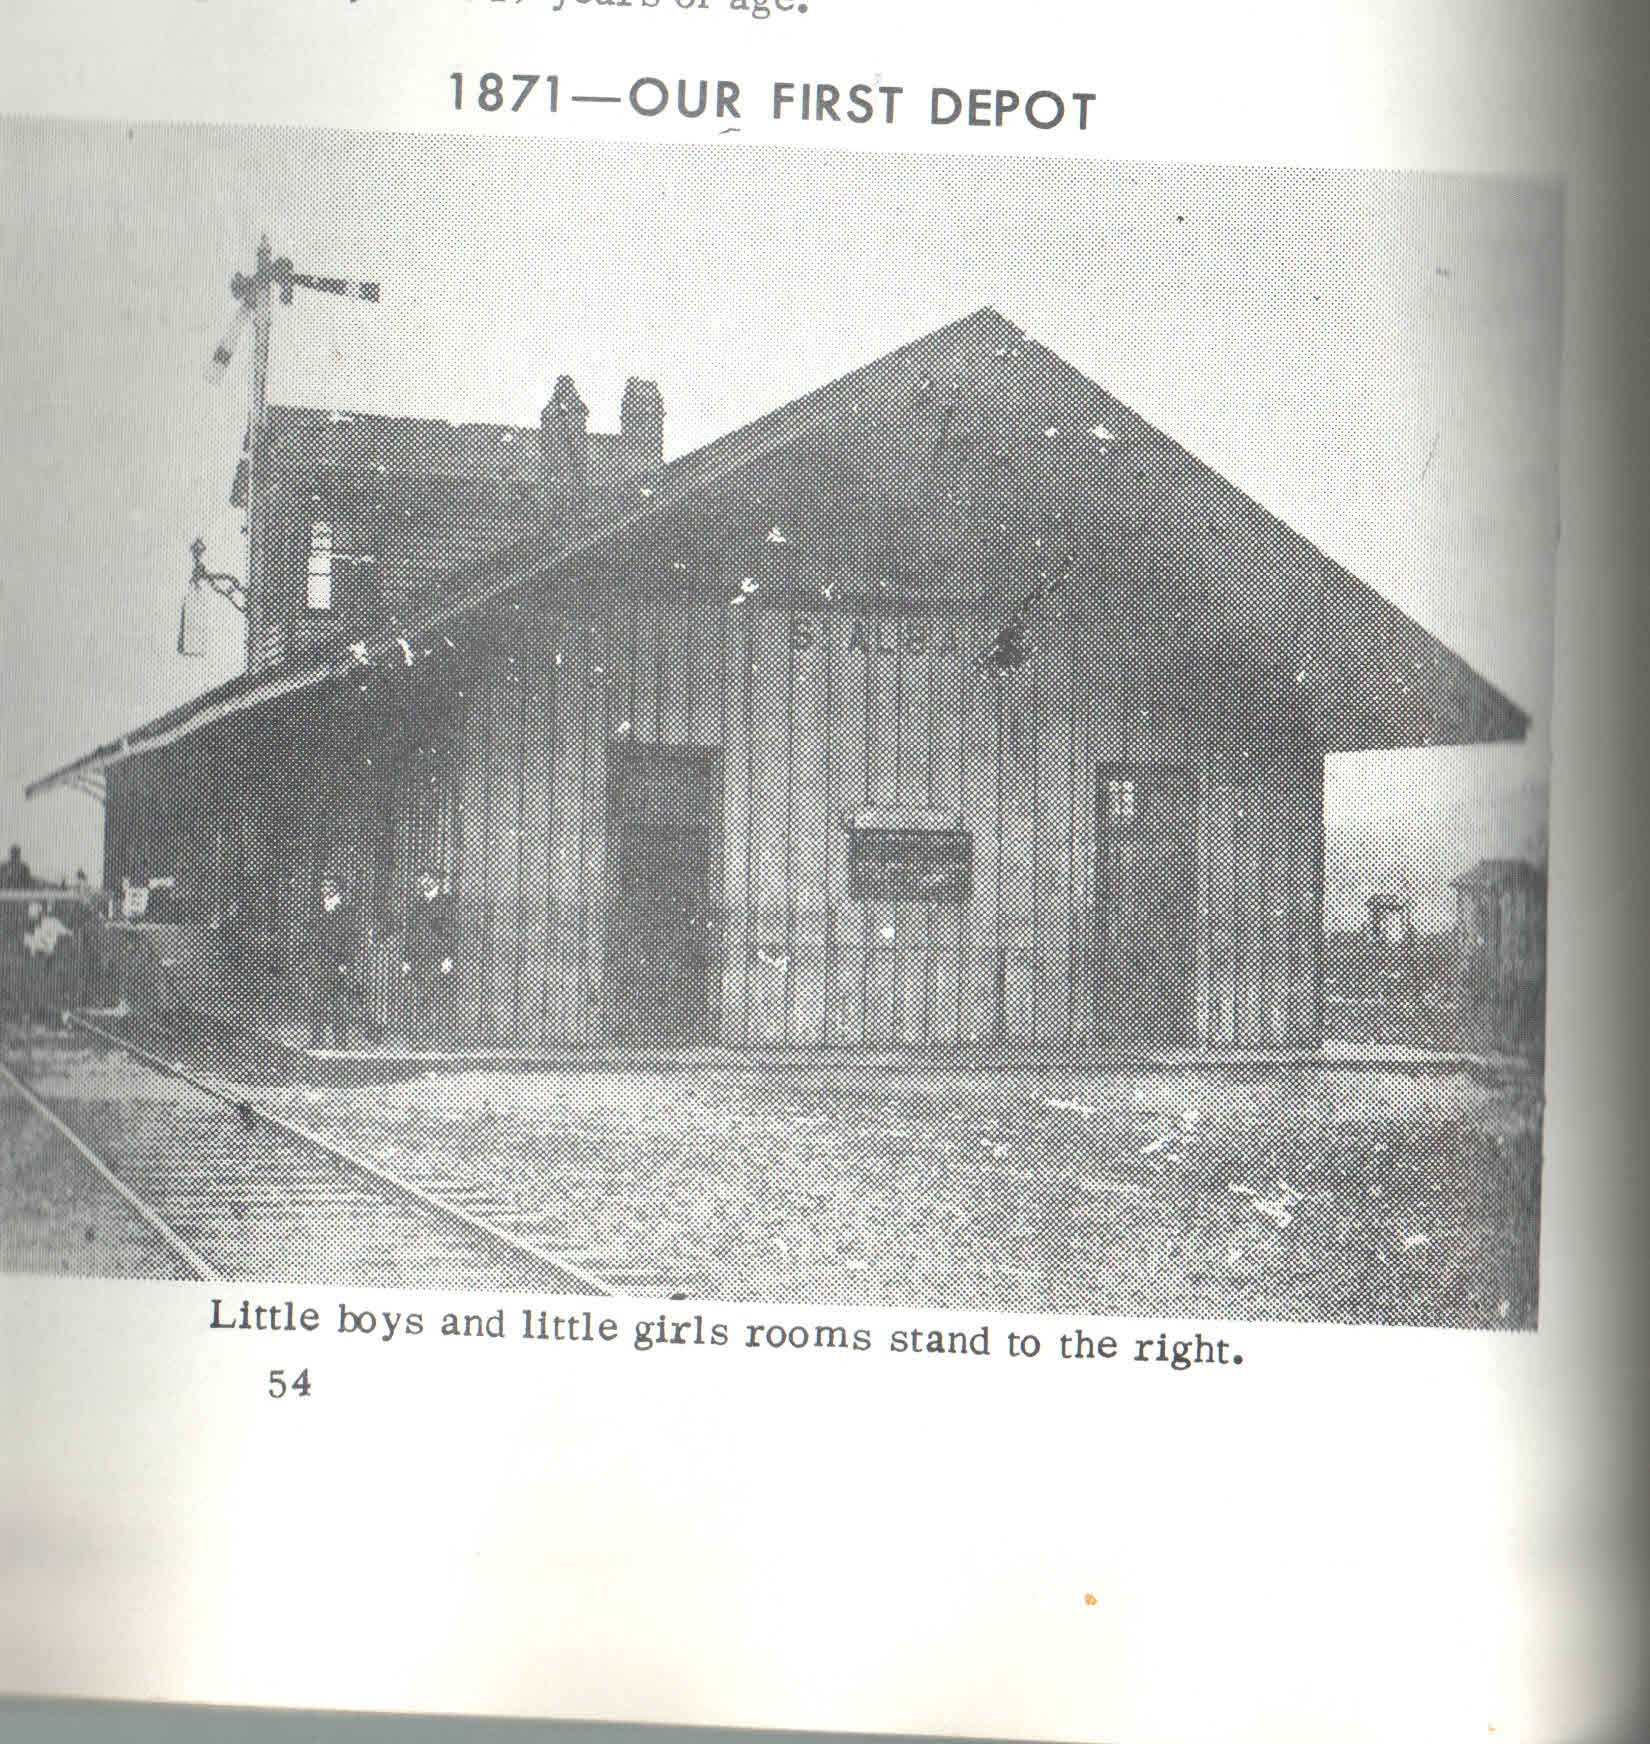 Here is a picture of the very first Chesapeake and Ohio Depot located on 5th Avenue, built in 1871 by Collis P. Huntington